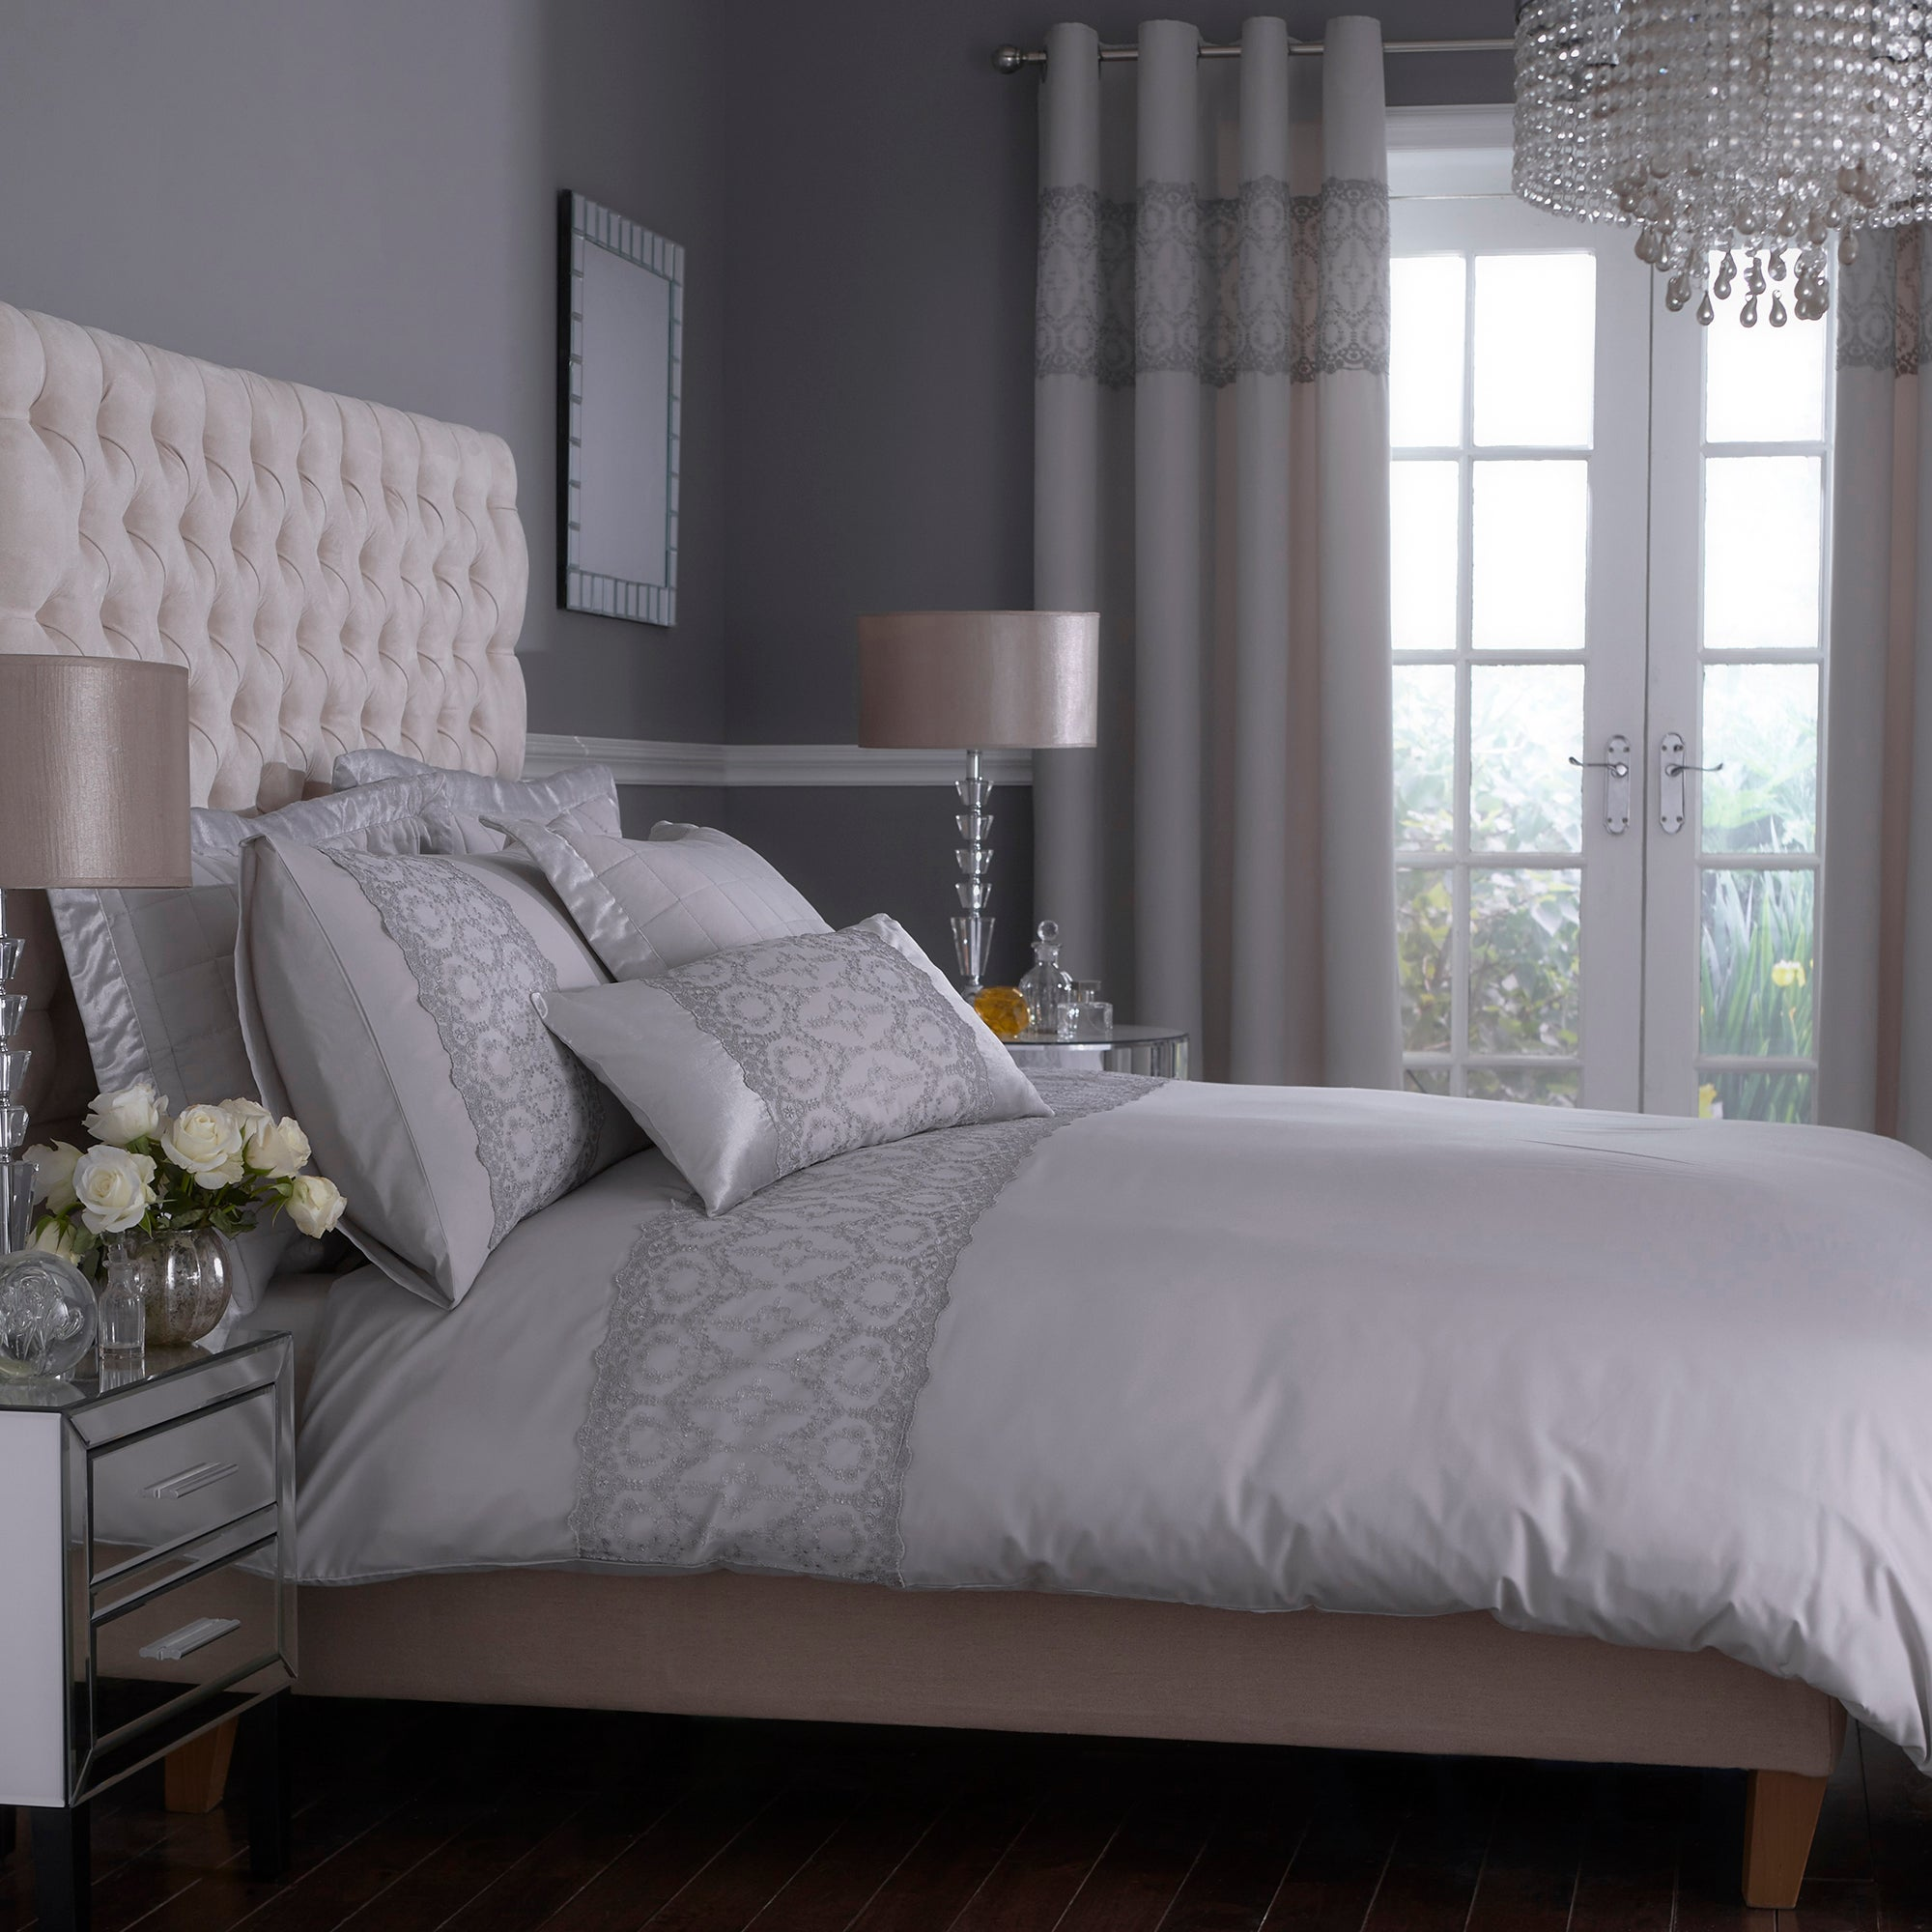 grey claudia collection duvet cover dunelm. Black Bedroom Furniture Sets. Home Design Ideas